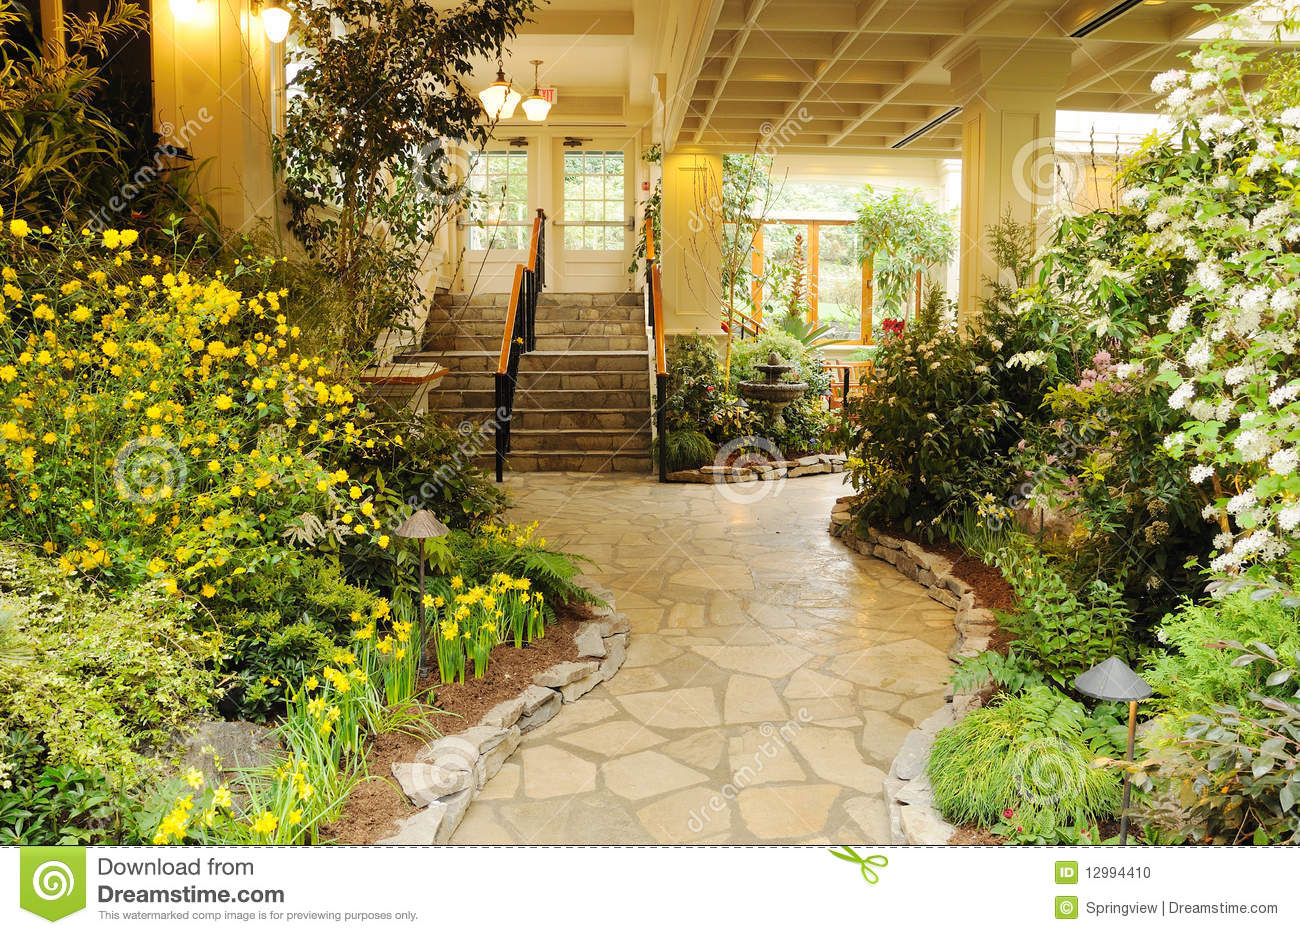 Jardin d 39 int rieur photo stock image 12994410 - Jardin interieur com ...